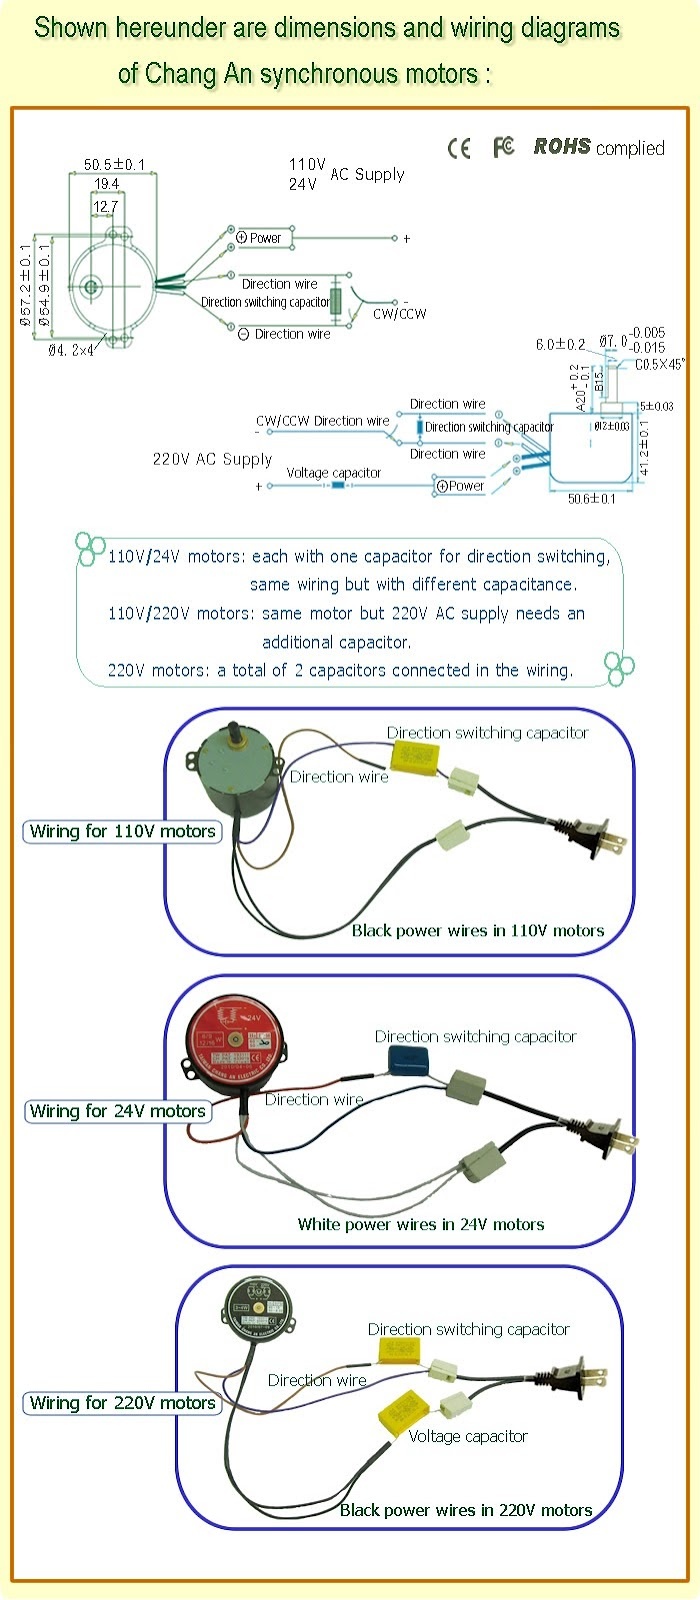 9 Lead 3 Phase Motor Wiring Diagram moreover Ac Capacitor Wiring Diagram Hard Start Capacitor Wiring Diagram 24 Volt From Thermostat Baldor Motor Capacitor Wiring Diagram together with Baldor Motors Wiring Diagram besides Start Capacitor Run Motor Wiring Diagram as well Single Phase Motor Controlled Circuit. on baldor motor wiring connections